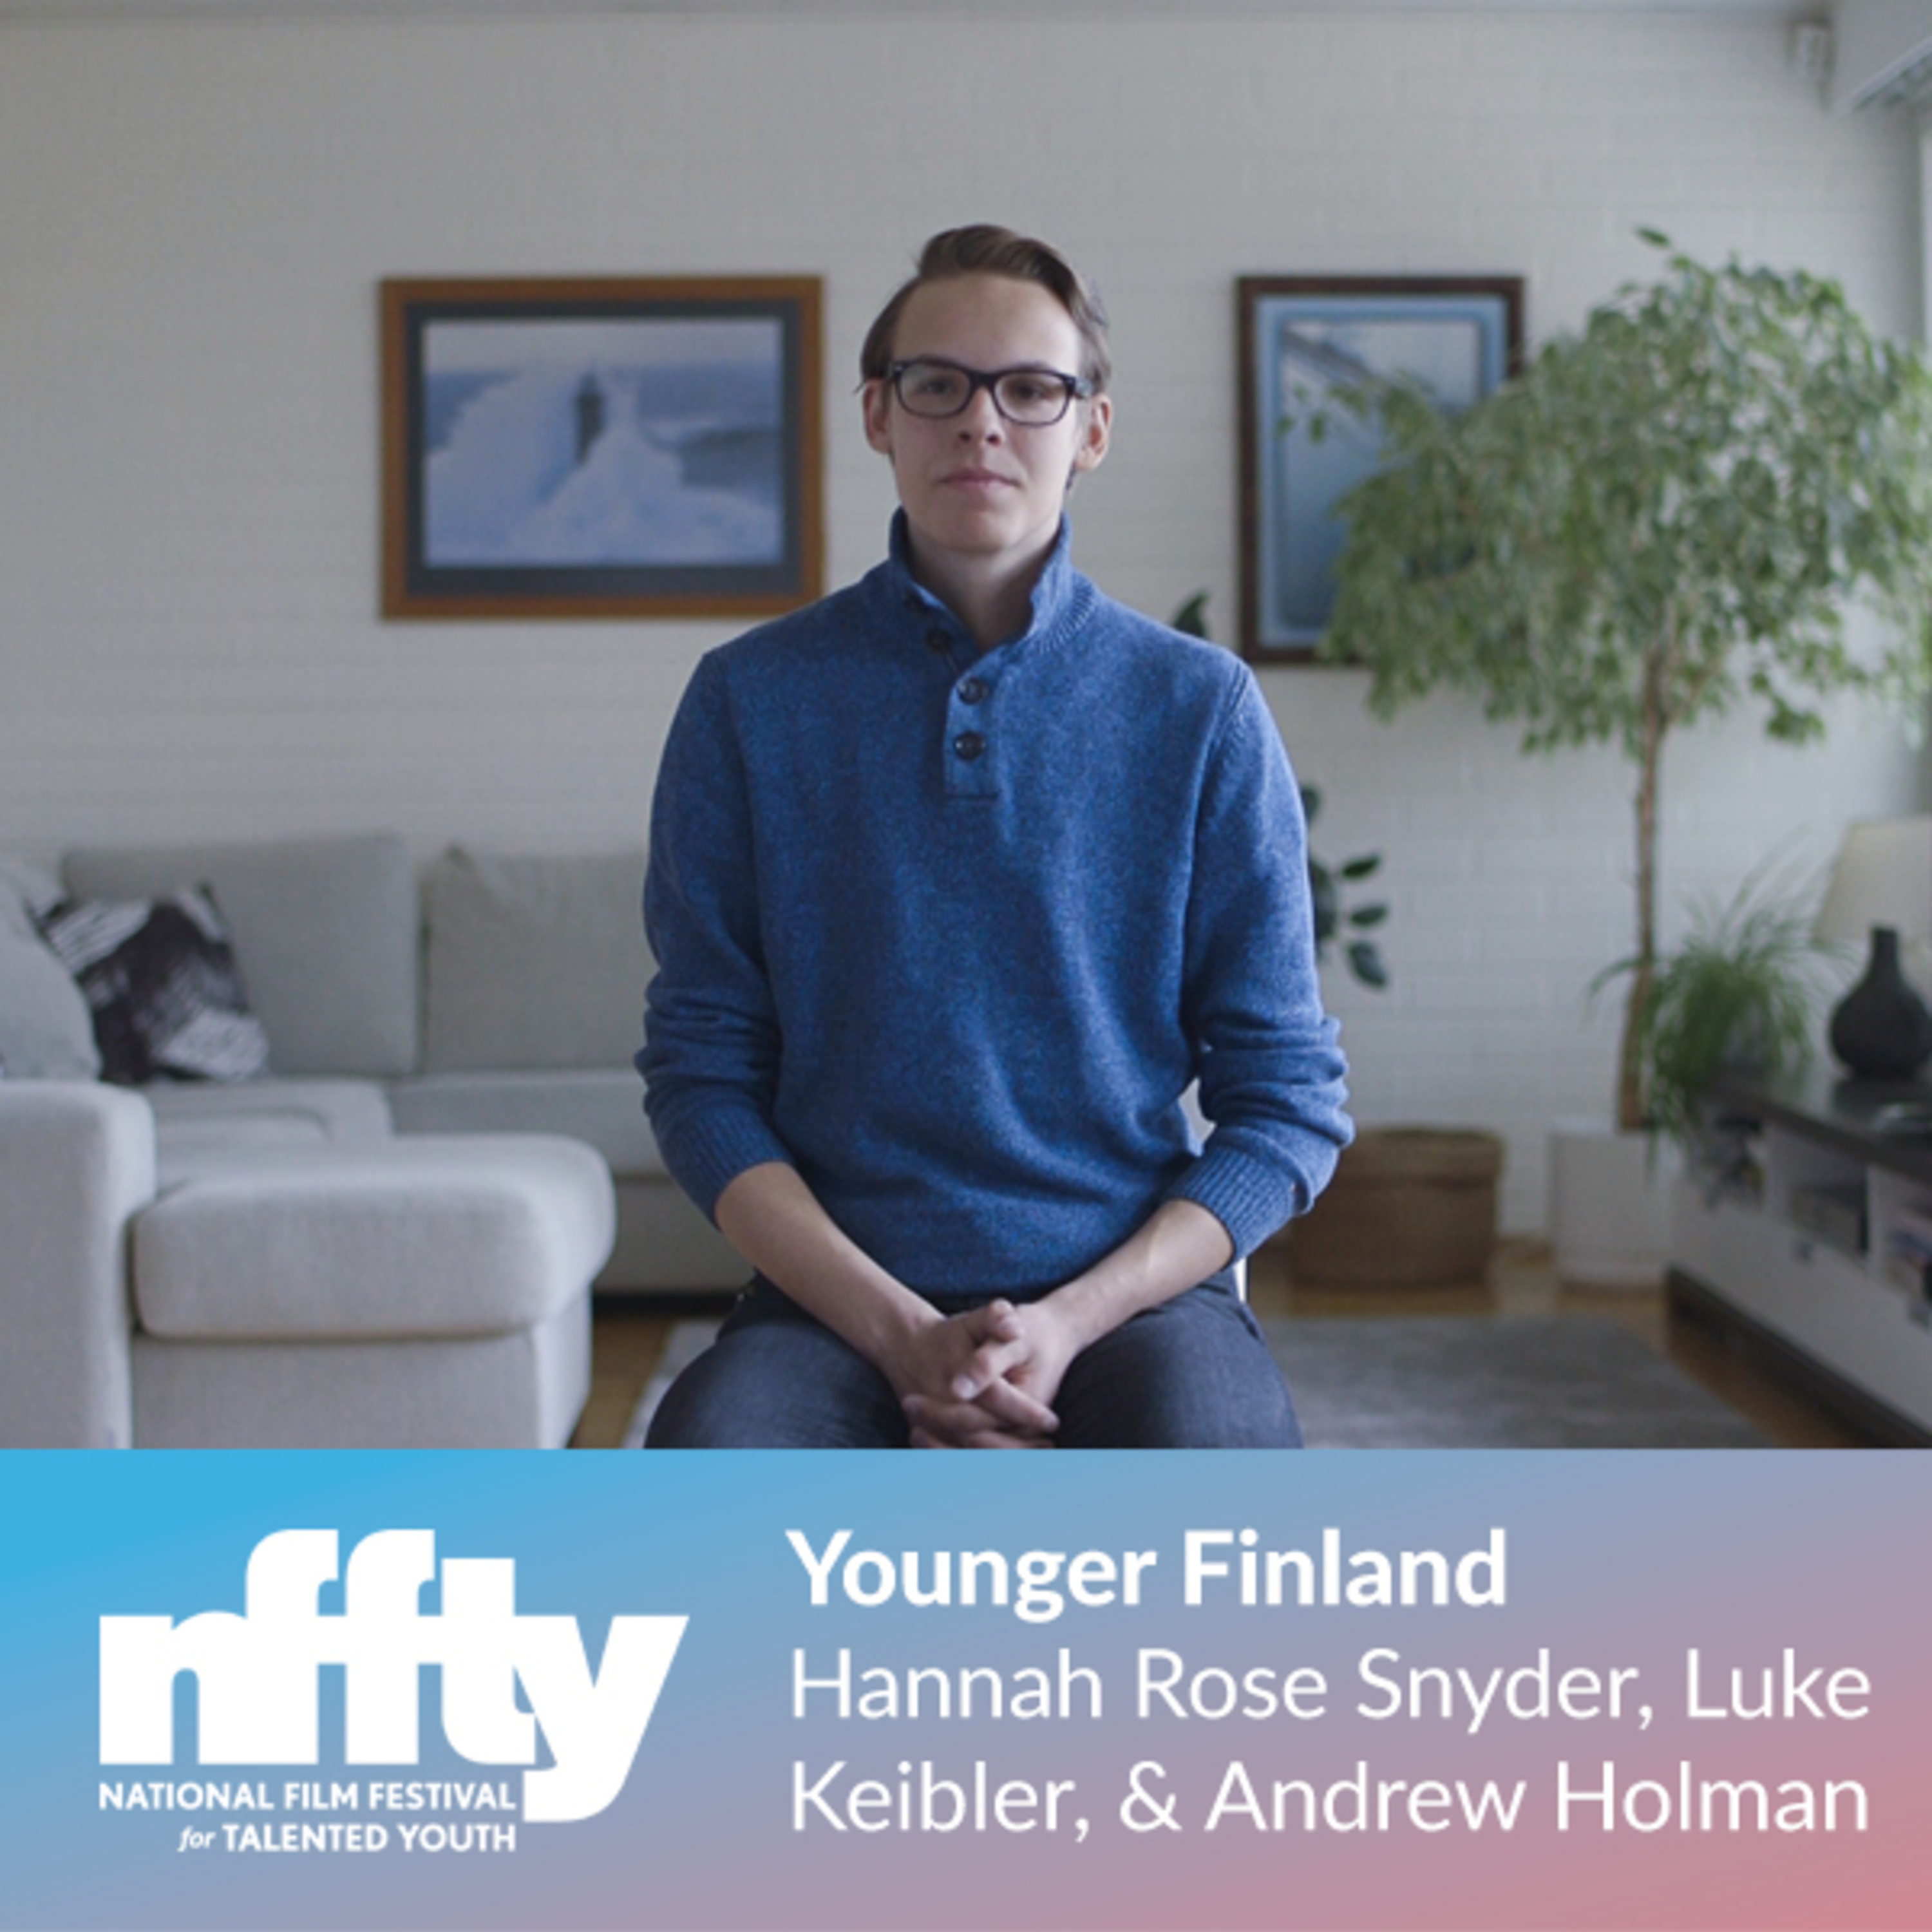 134: Younger Finland